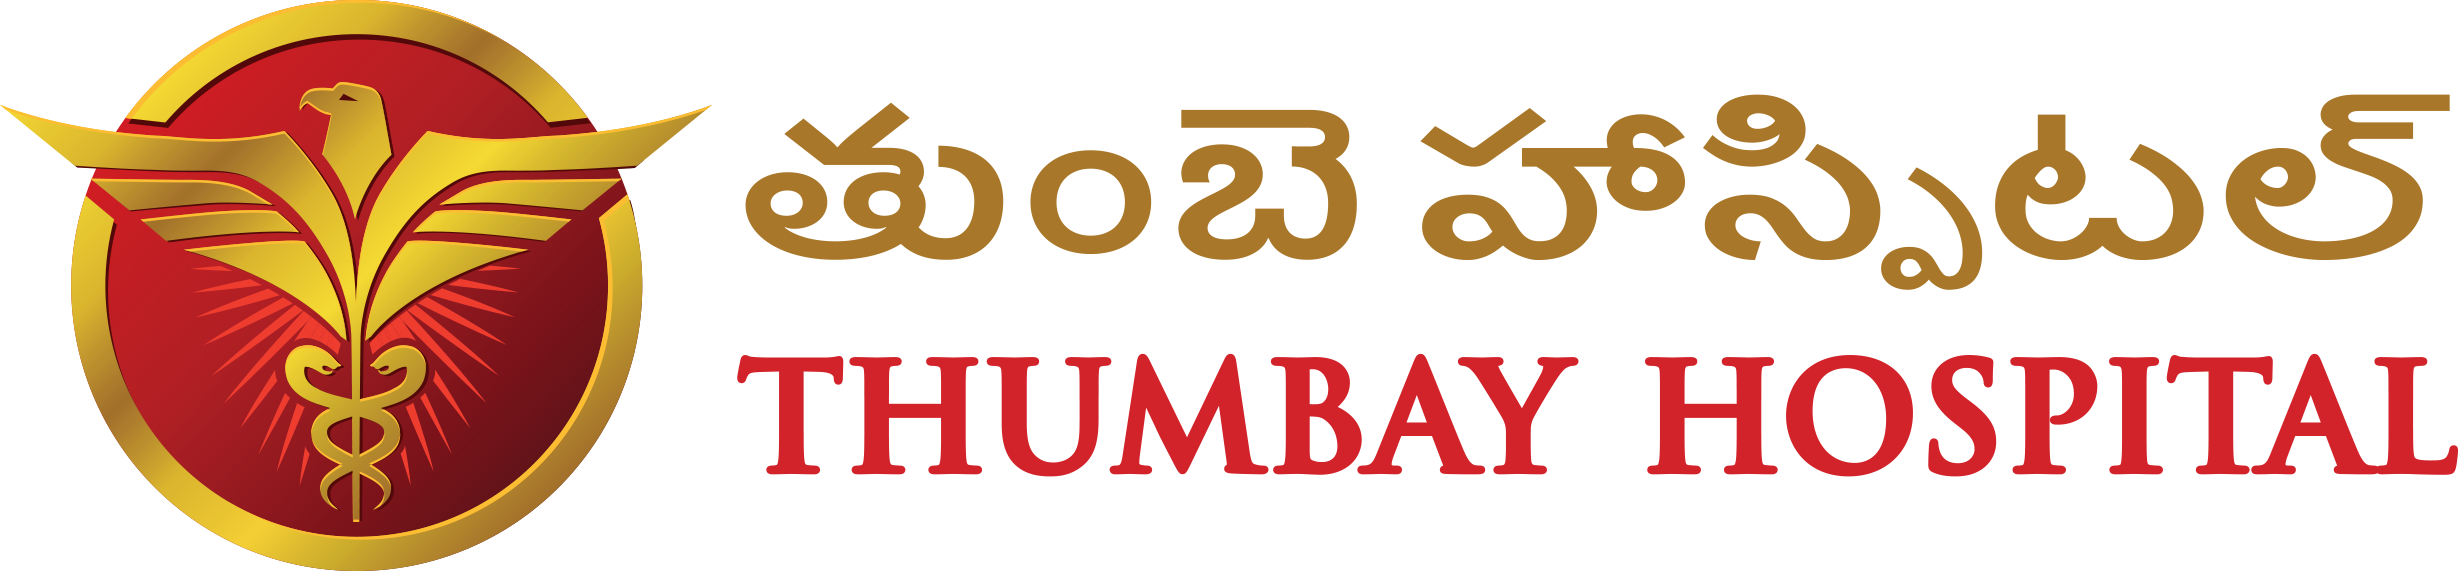 Thumbay Hospital New Life, Hyderabad